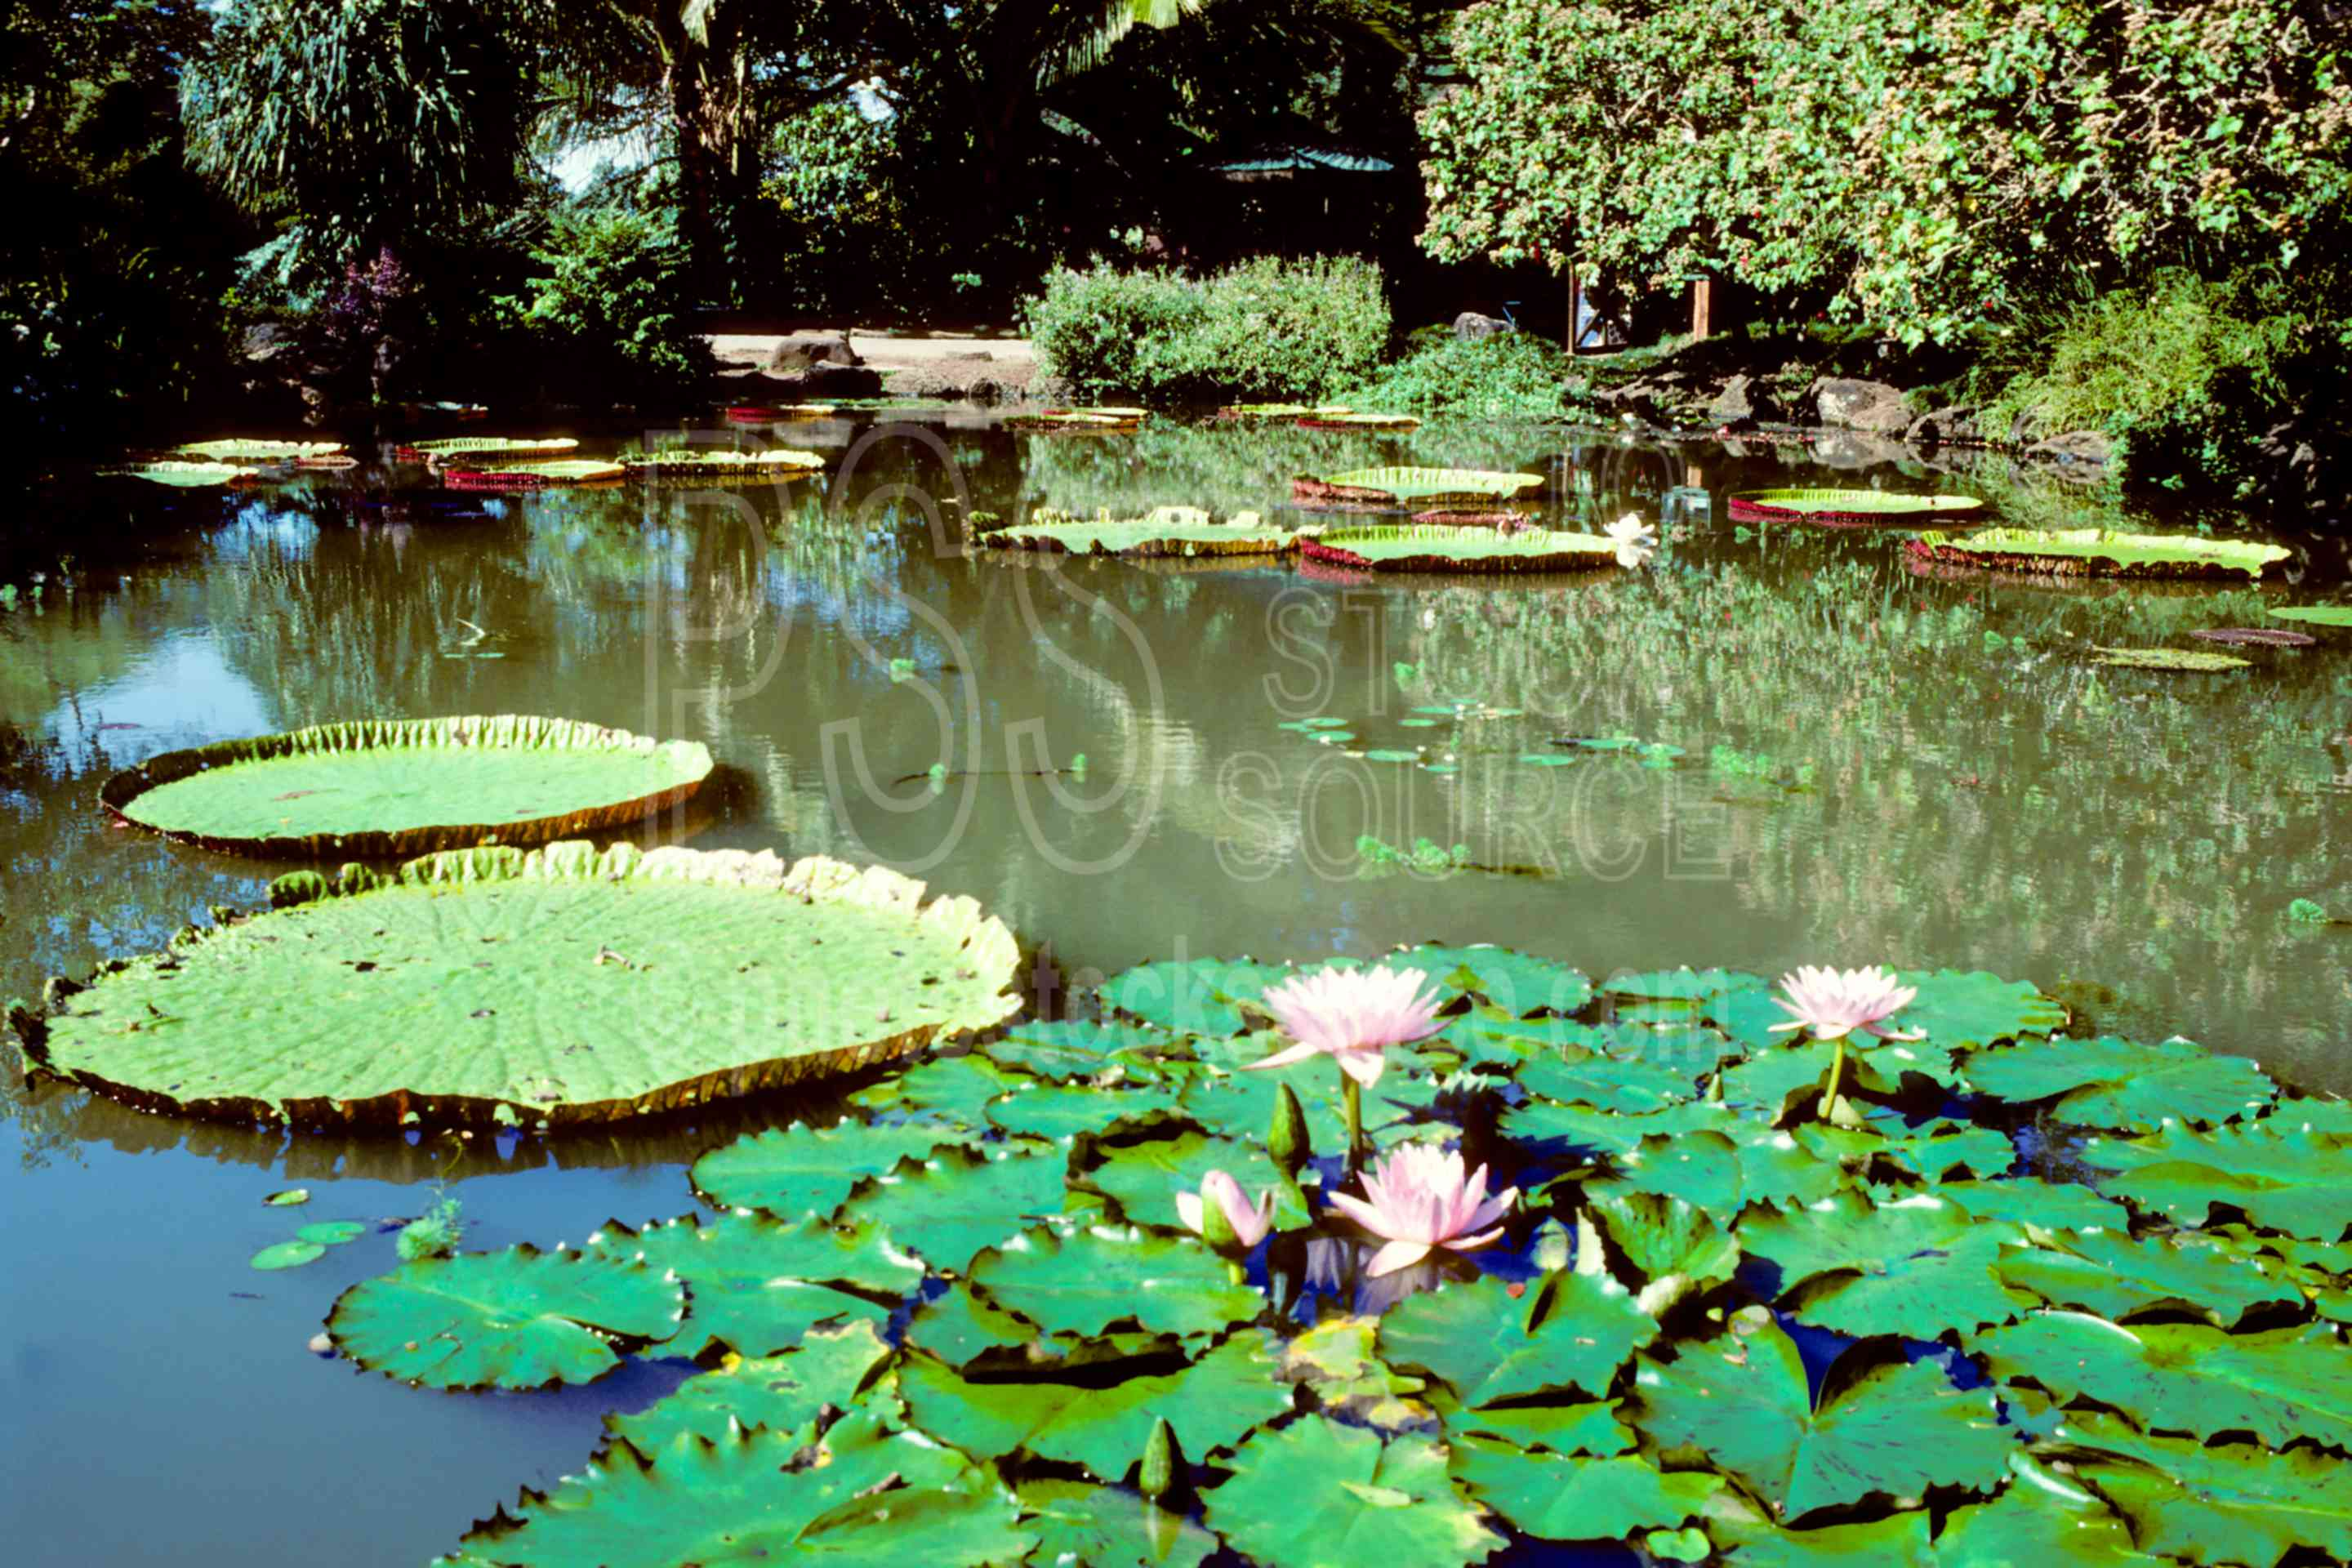 Water Lilies,lily pad,water lily,usas,flowers,plants